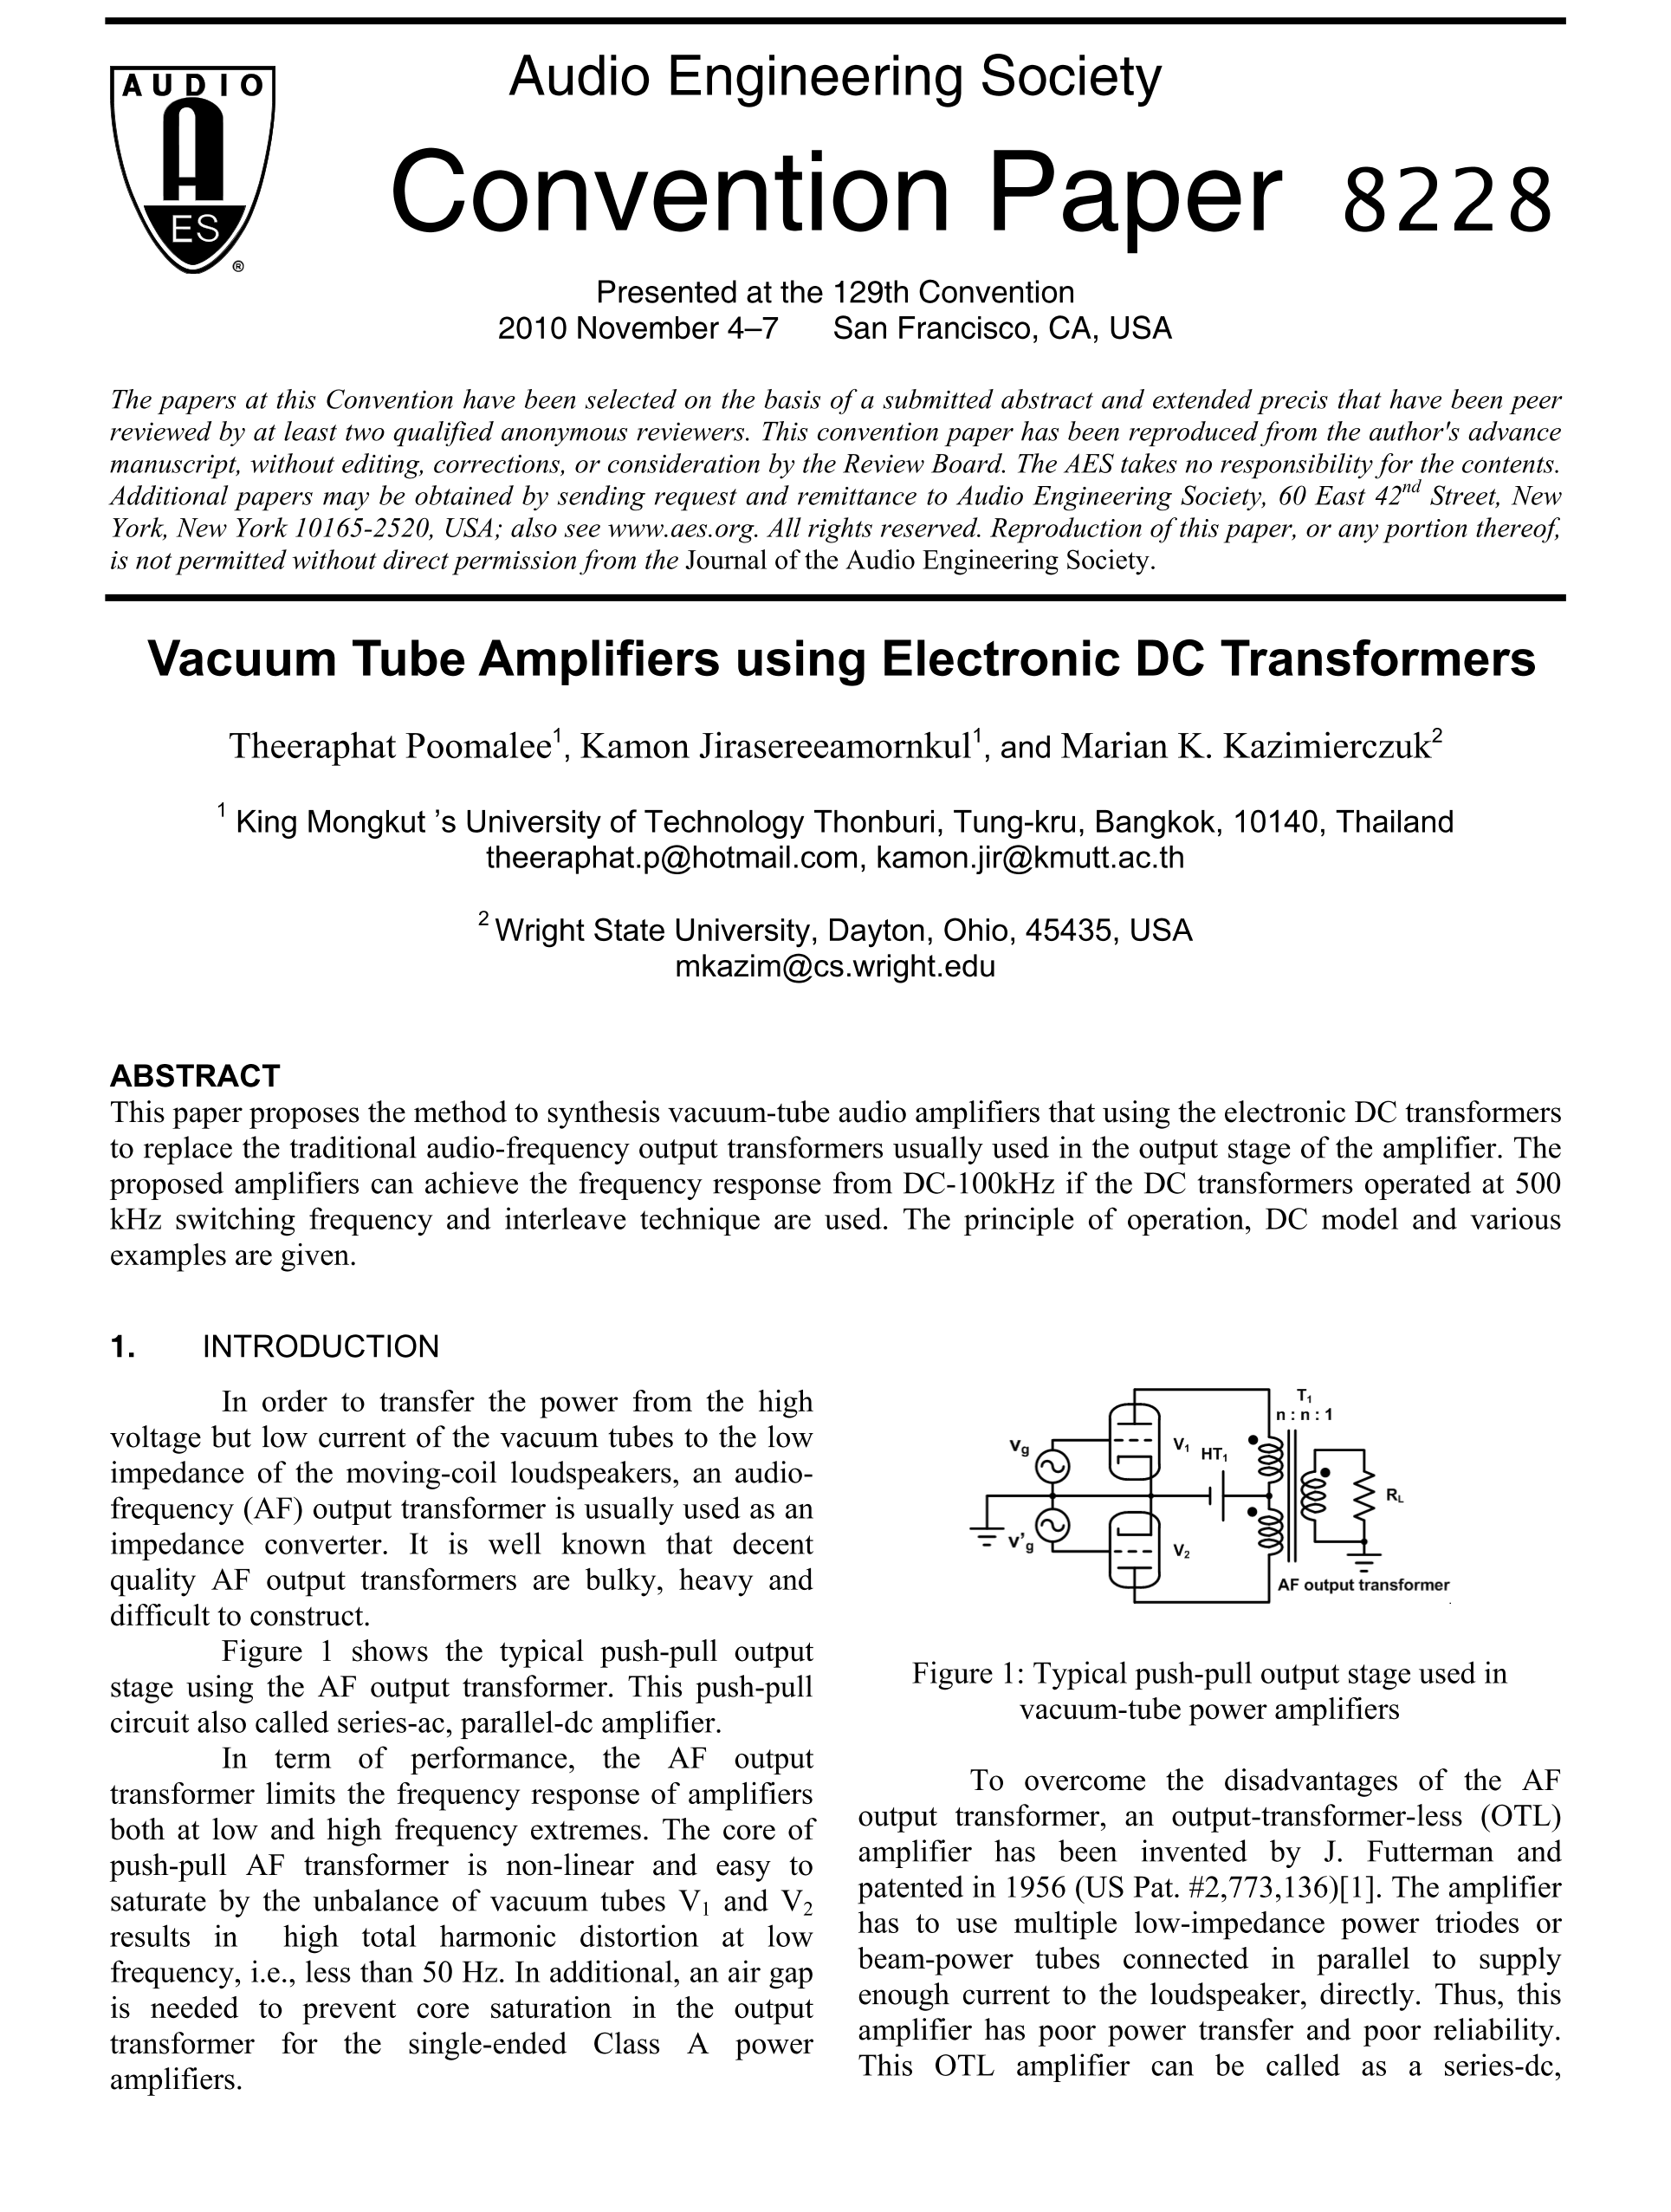 Aes E Library Vacuum Tube Amplifiers Using Electronic Dc Transformers Society 16 Watt Bridge Amplifier Circuit Schematic